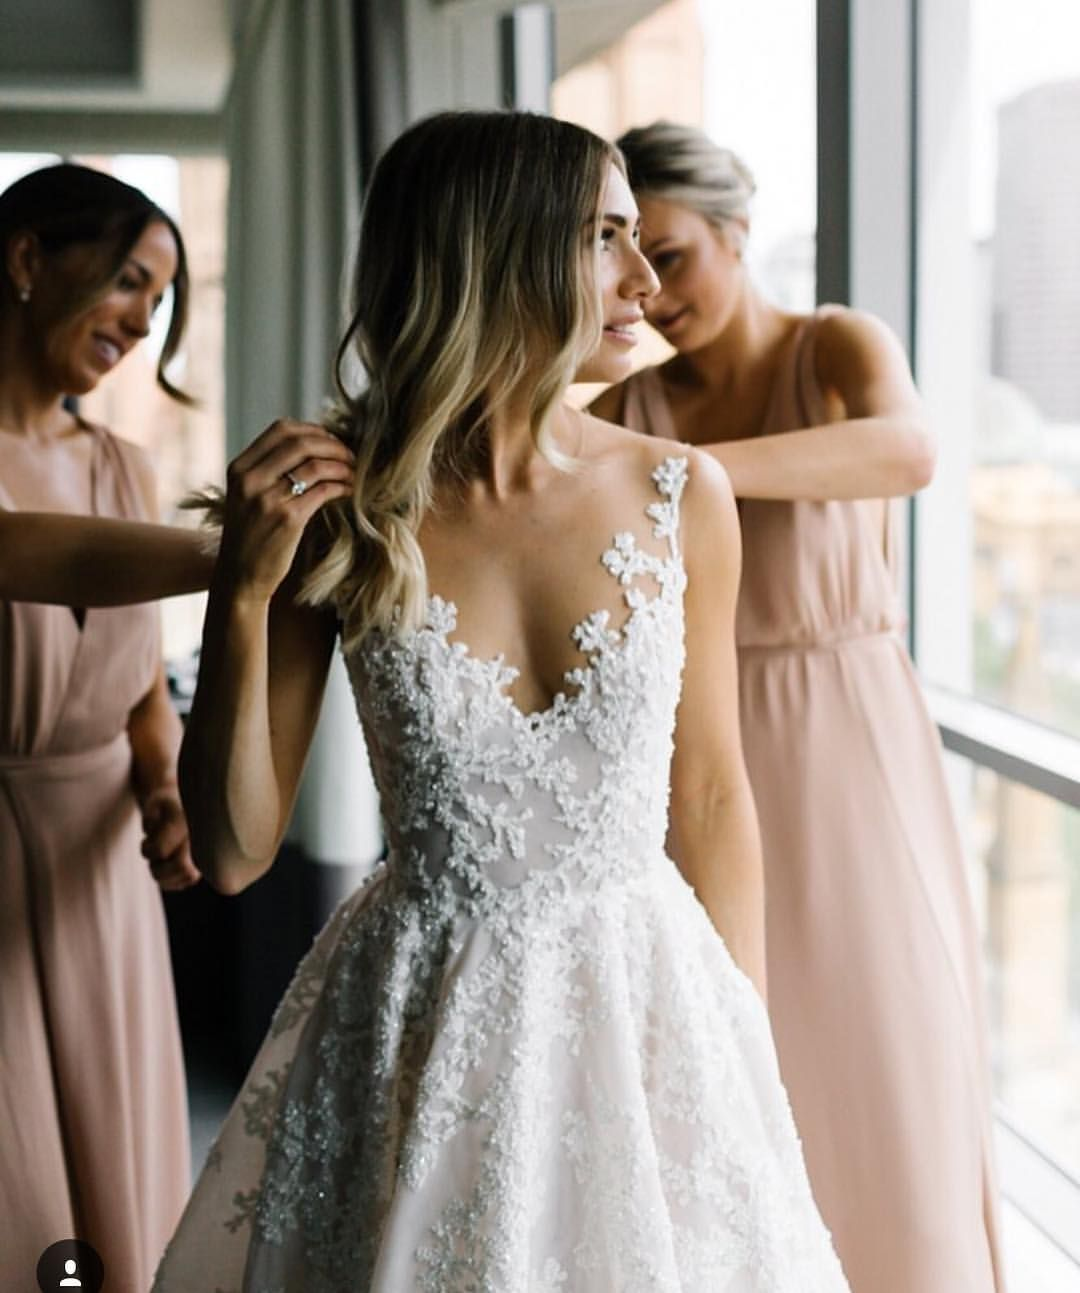 Pin by amber mitchison on wife me pinterest paolo sebastian